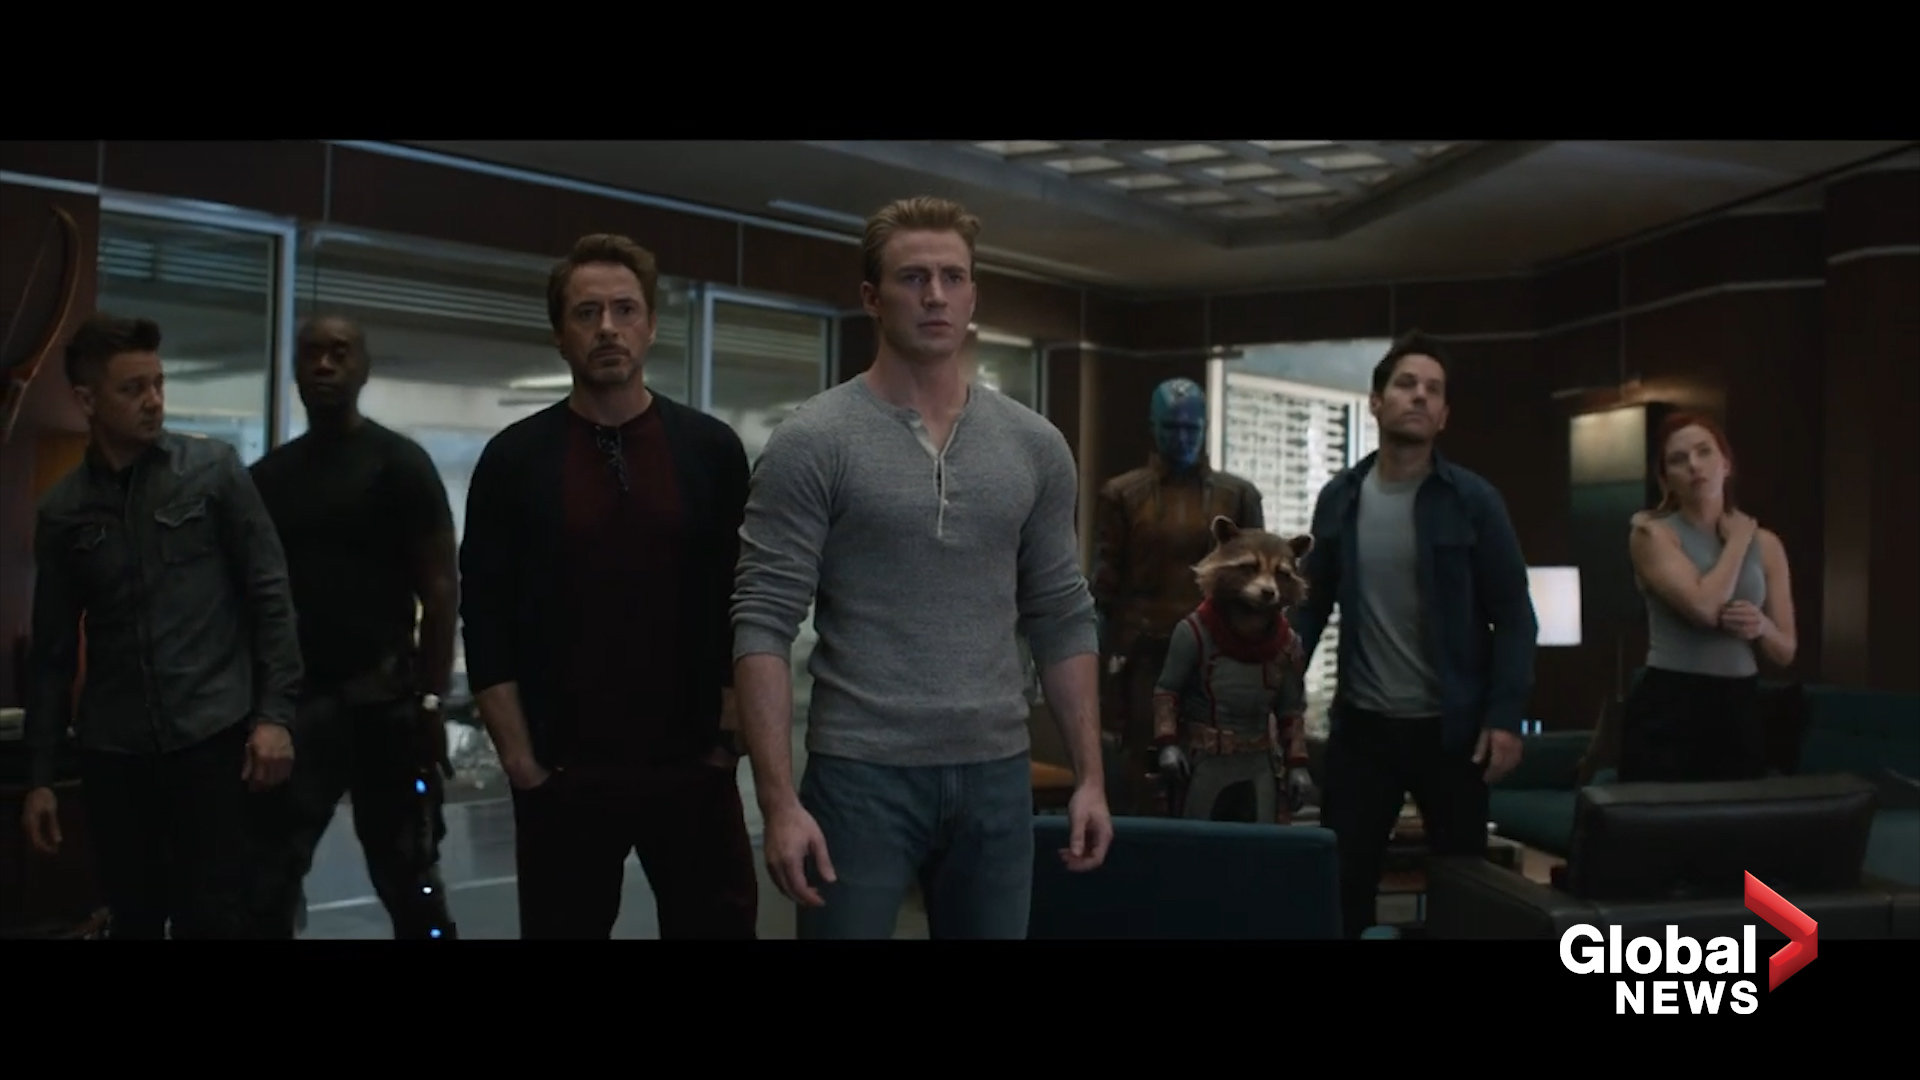 The Avengers Take on Thanos in New Endgame Trailer